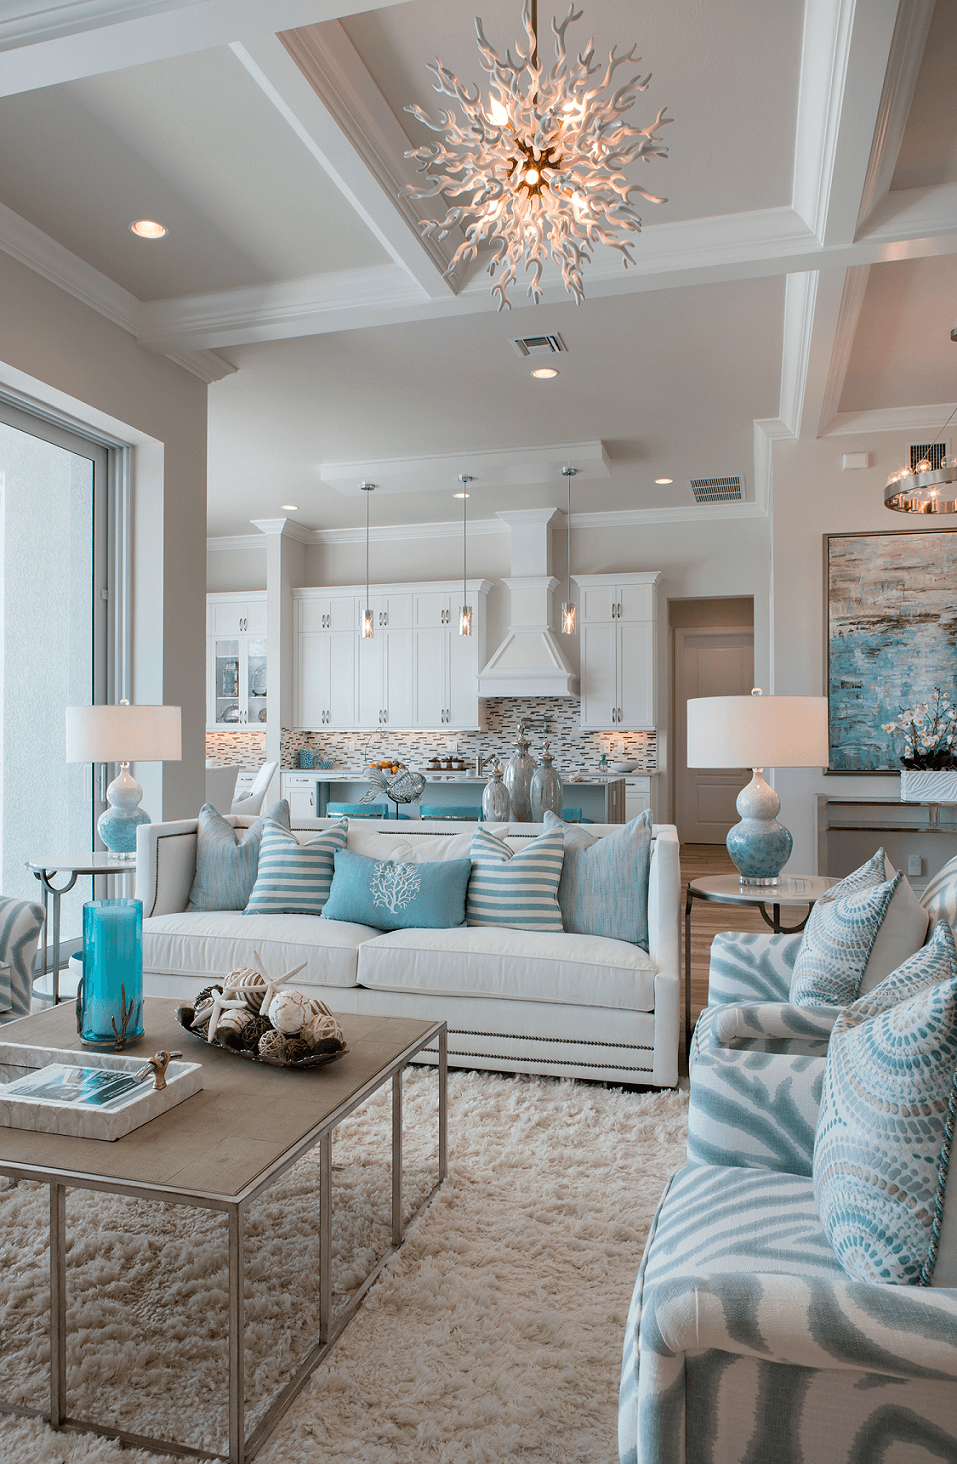 Coastal Decorating Ideas with Turquoise Accents & 34 Best Beach and Coastal Decorating Ideas and Designs for 2018